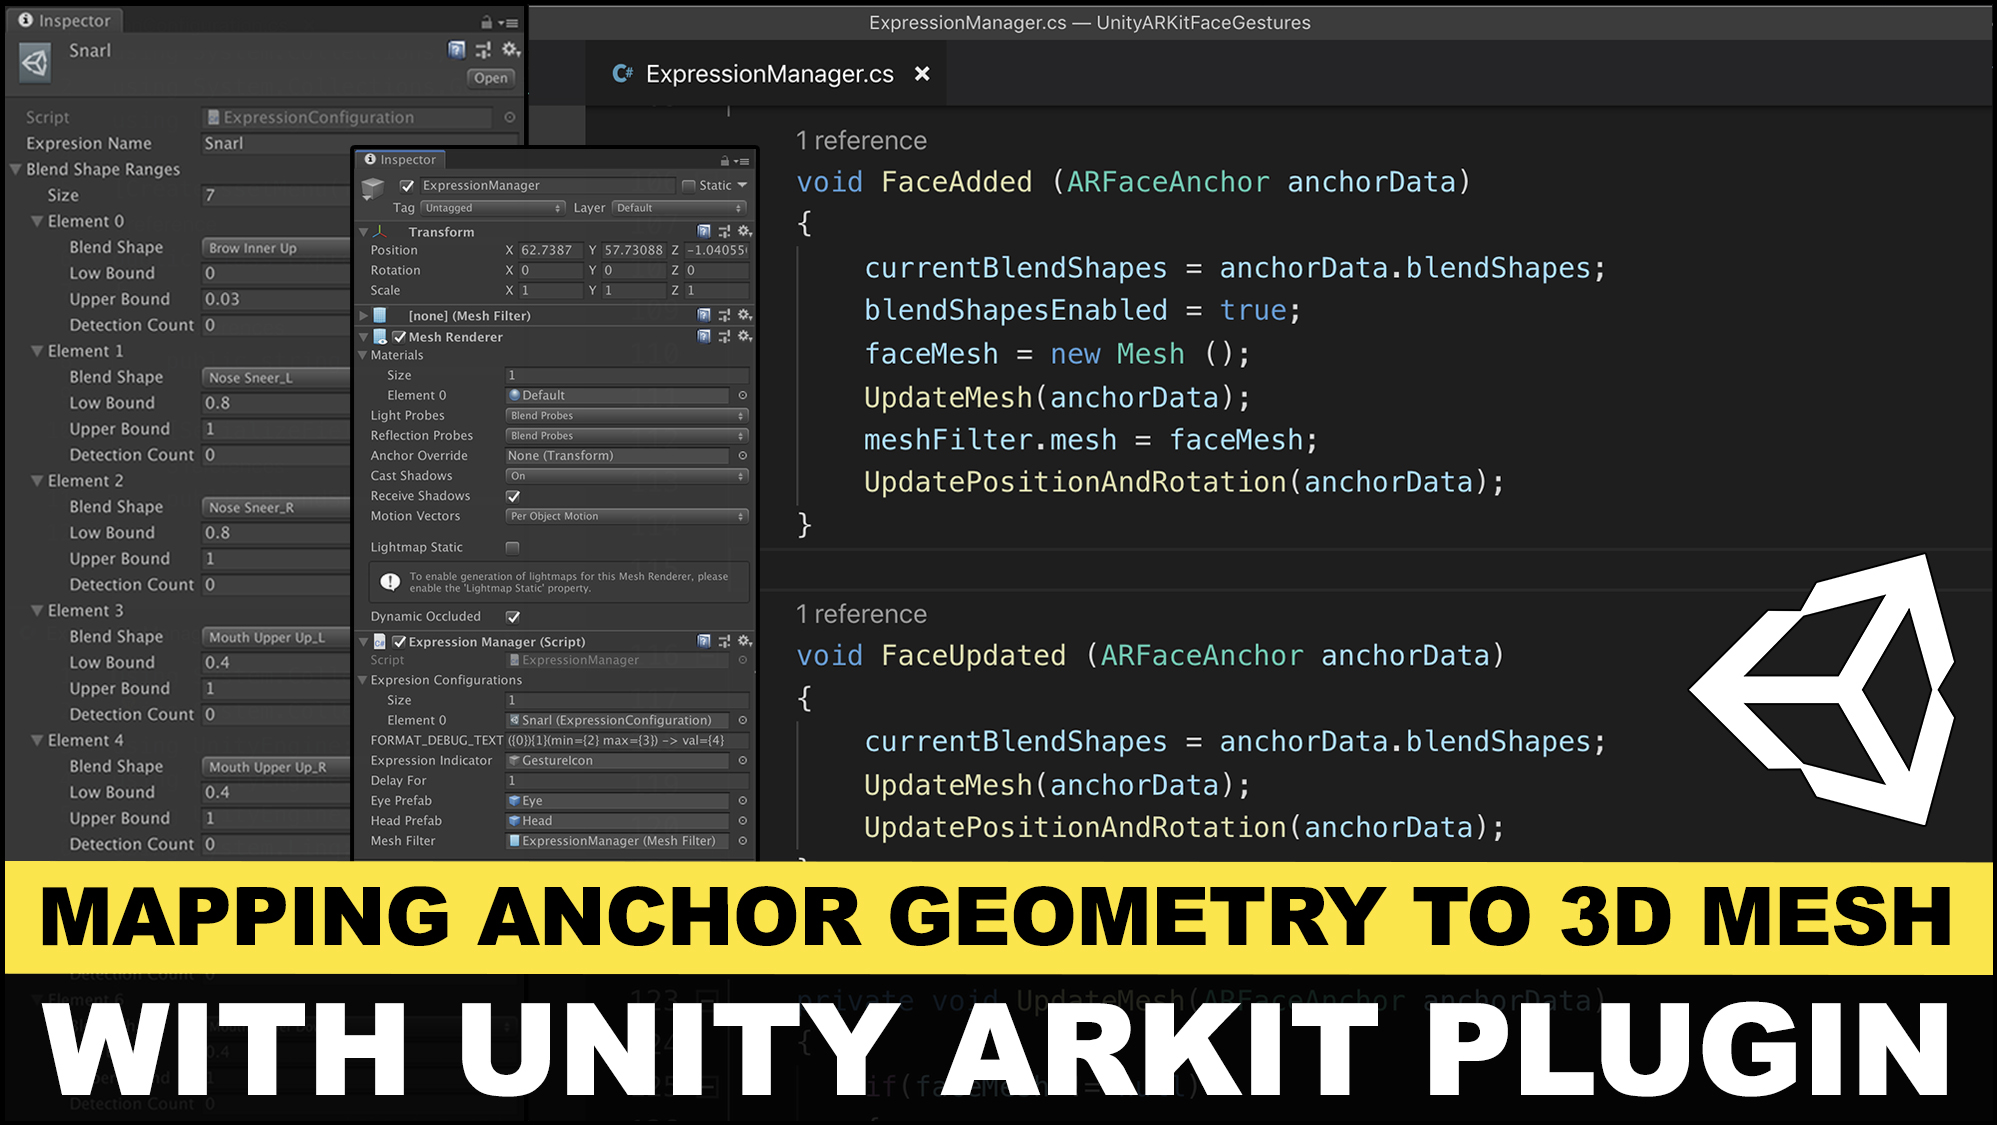 Unity3d ARKit Face Tracking and generating a 3D to map to face geometry